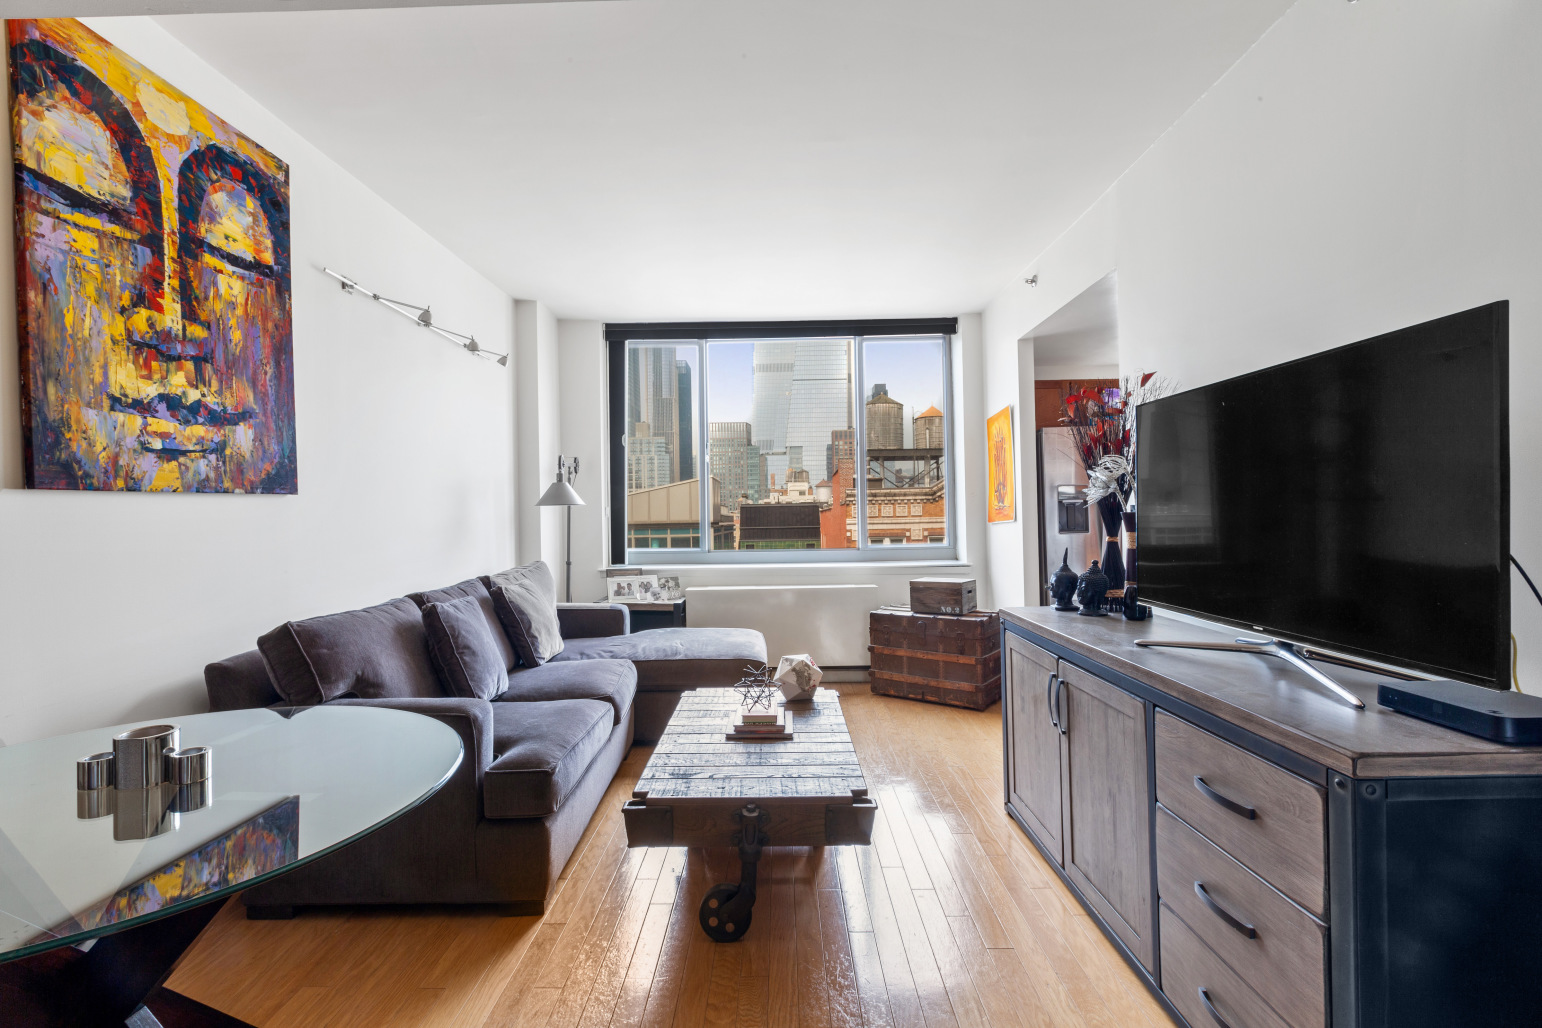 Apartment for sale at 520 West 23rd Street, Apt 16-C